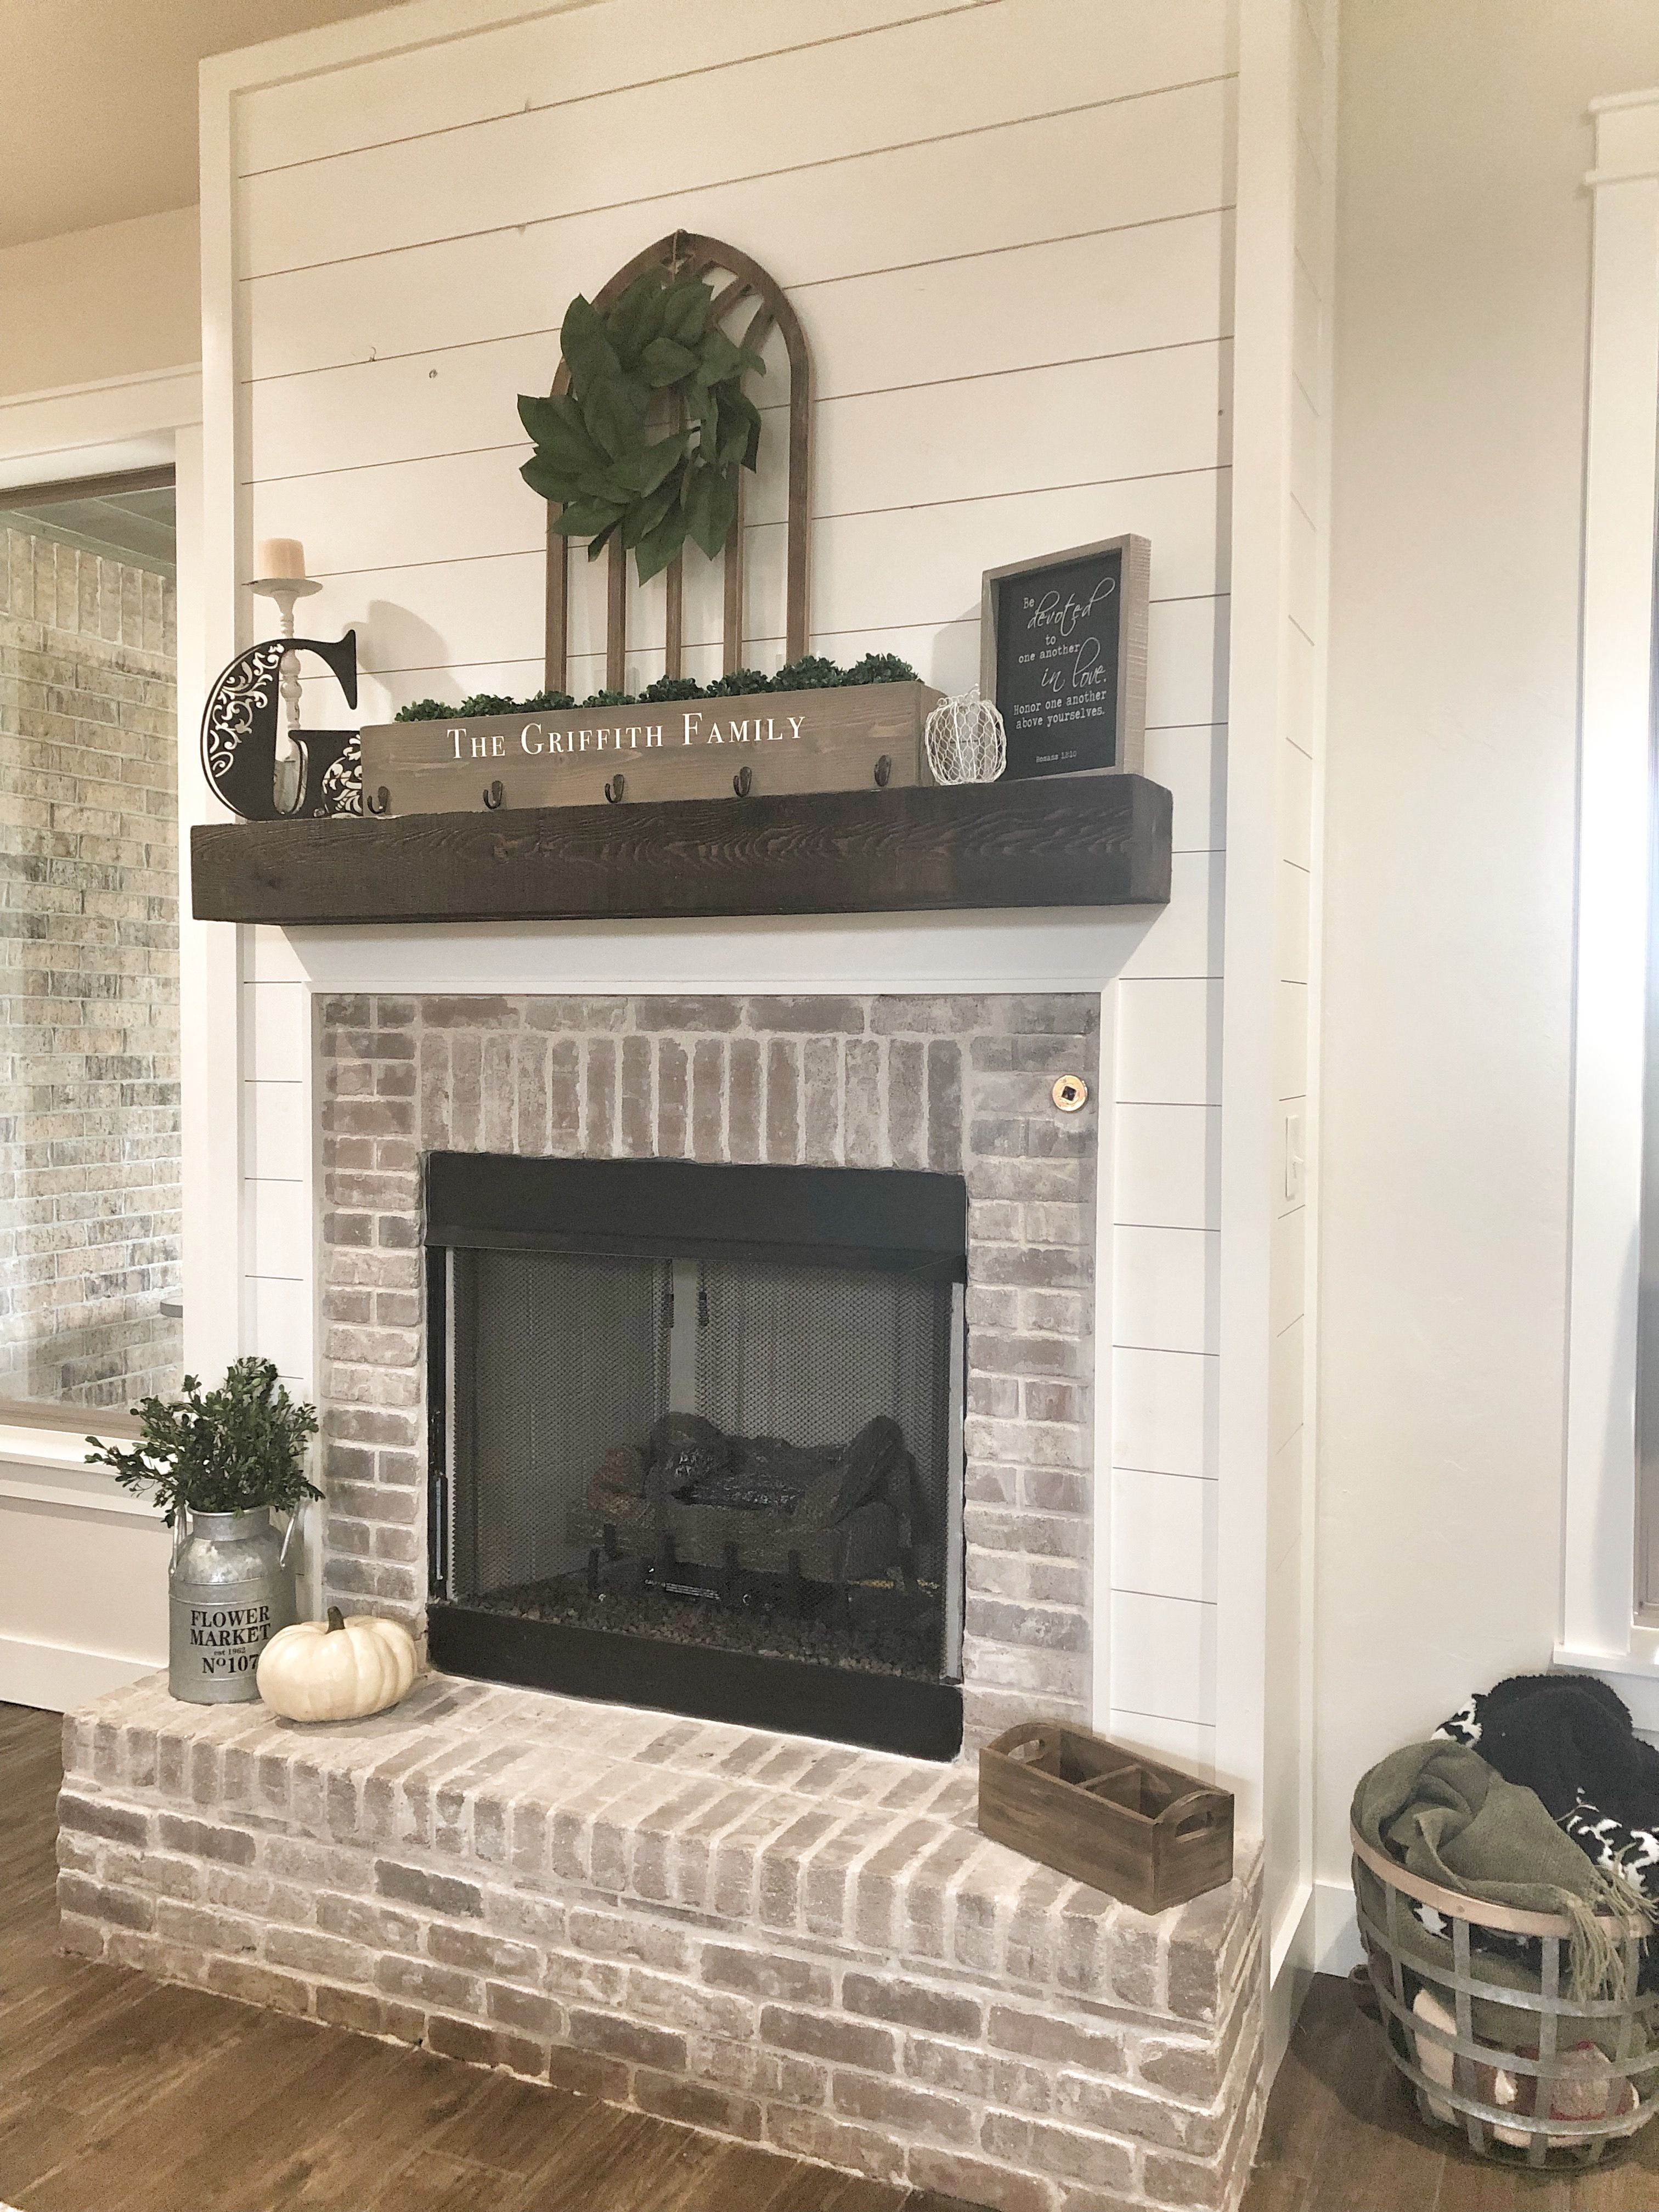 Shiplap Fireplace With Brick Surround And Hearth Shiplap Fireplace Home Fireplace Diy Shiplap Fireplace